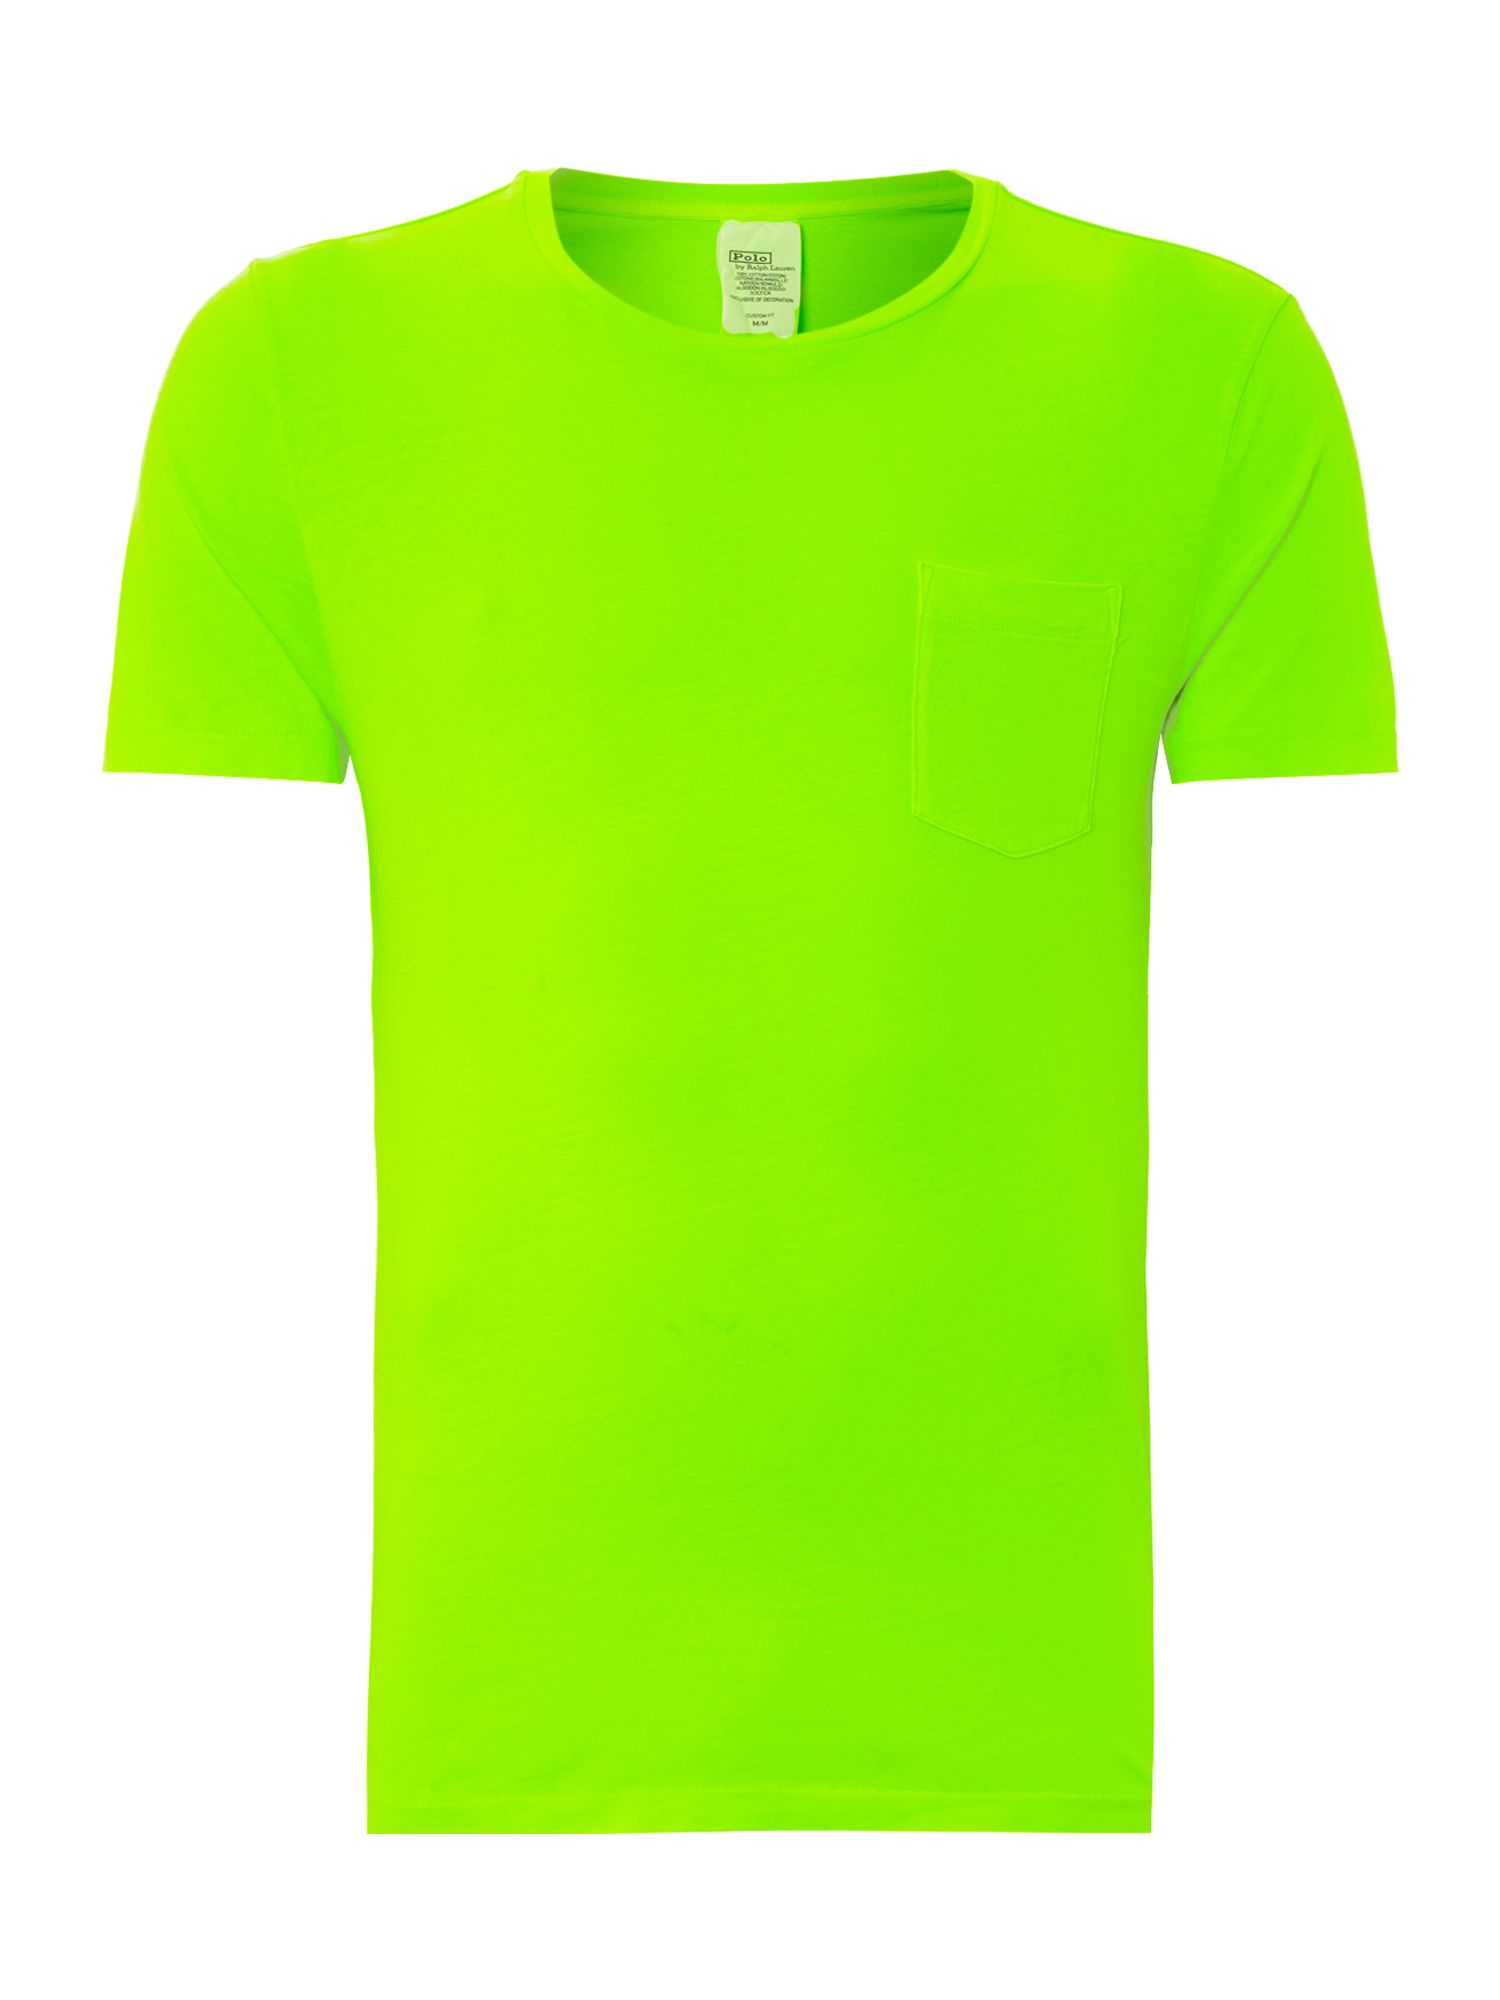 Polo ralph lauren crew neck pocket t shirt in green for for Polo t shirts with pocket online